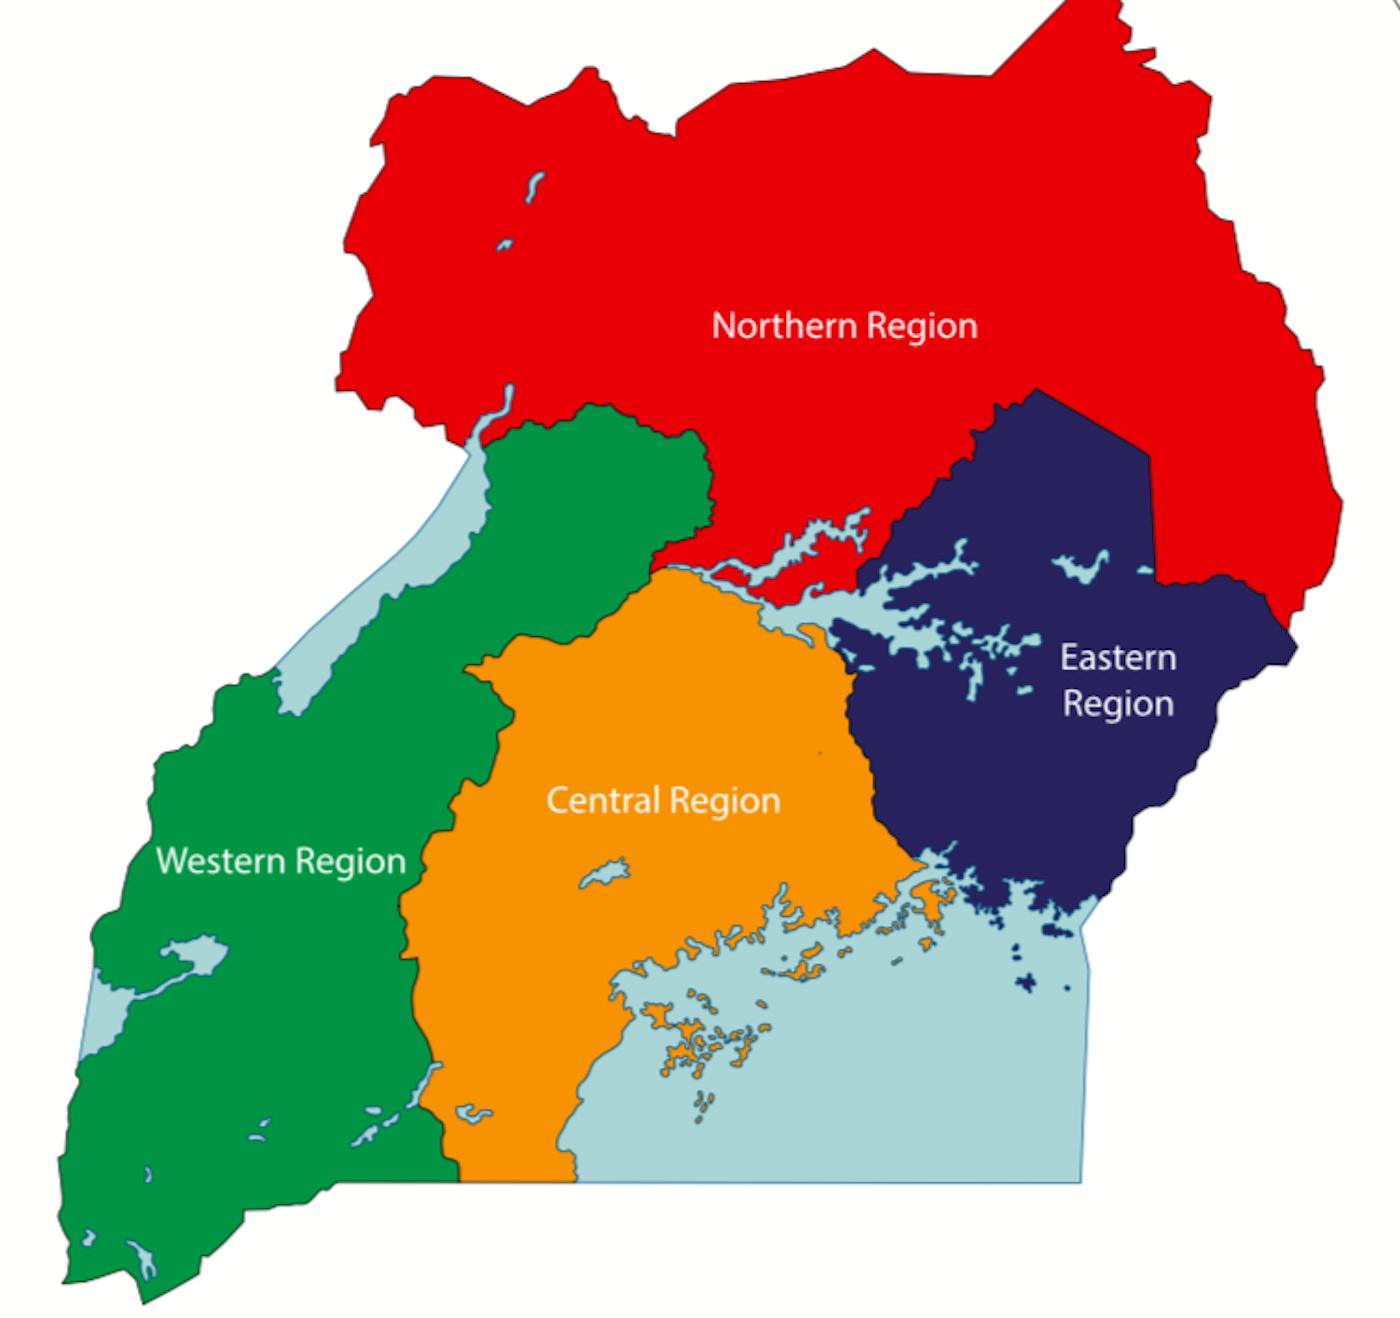 The Political Map of Uganda displaying its four major regions, their capital cities, and the national capital of Kampala.